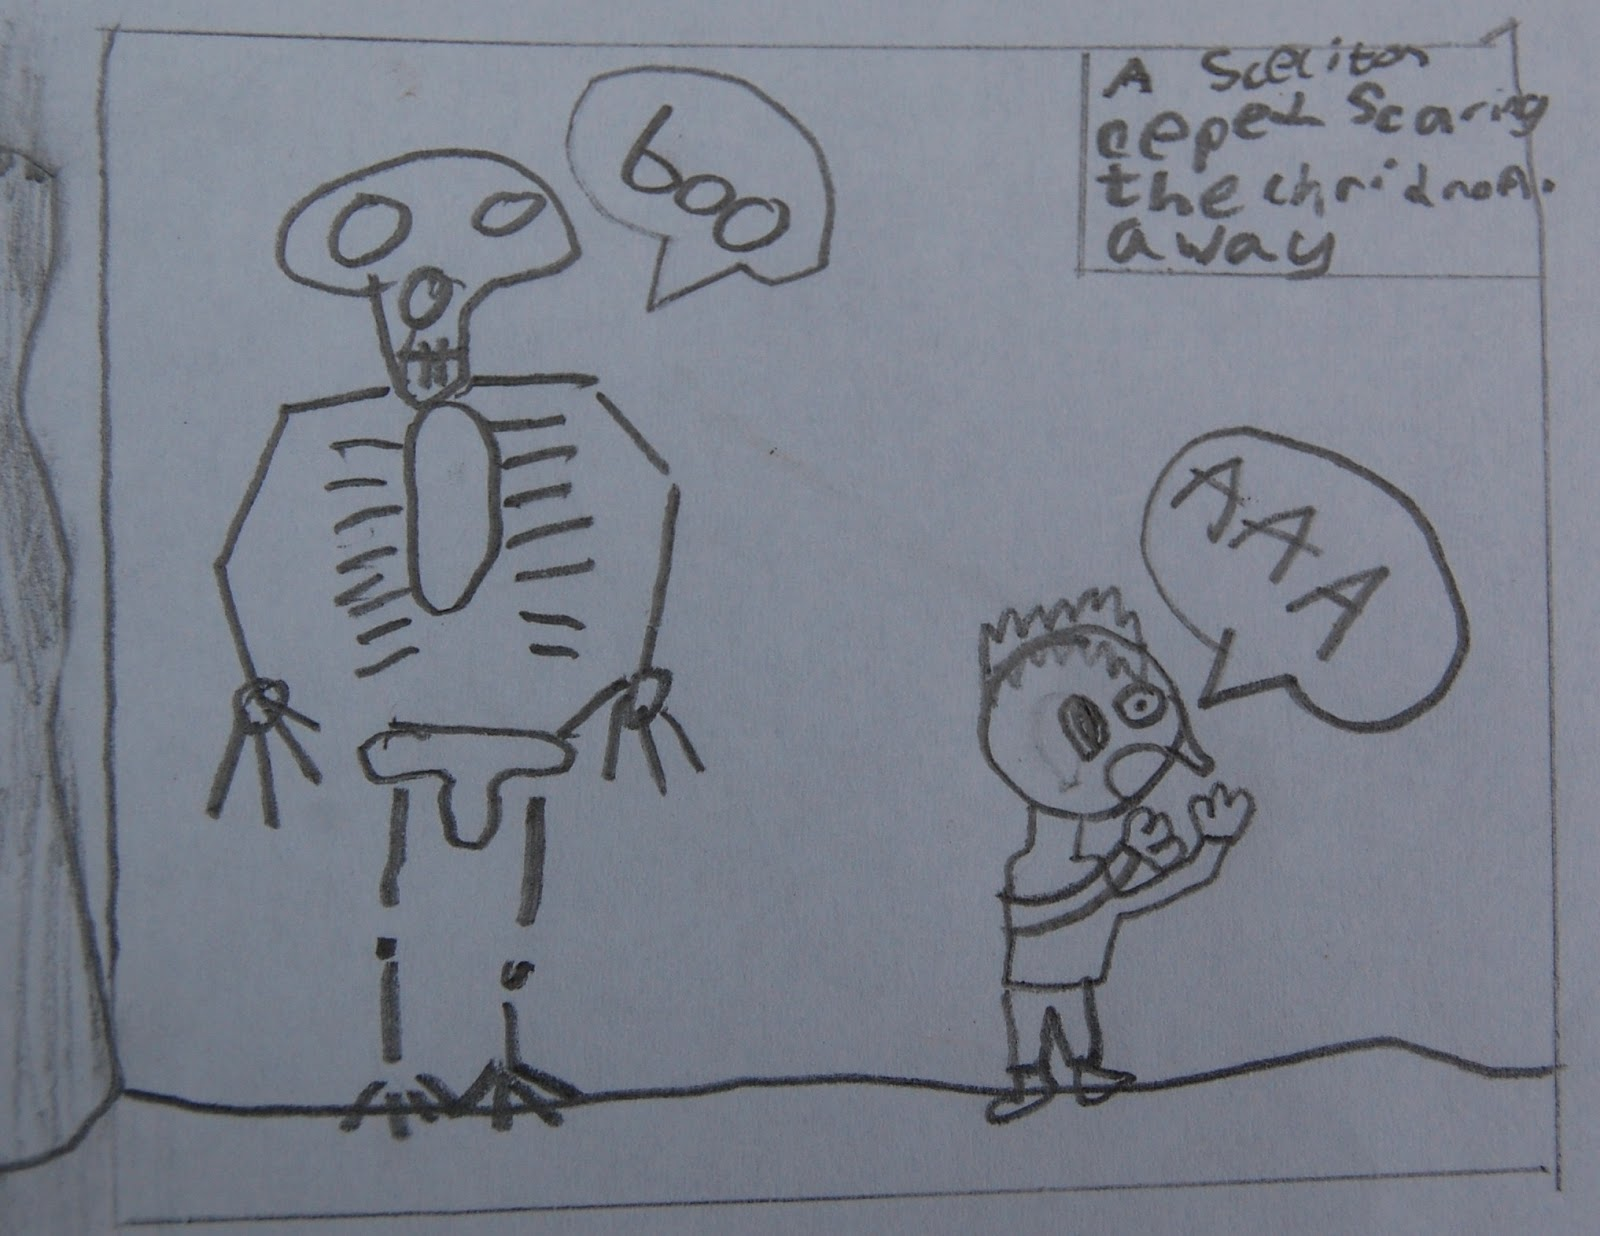 A skeleton kept scaring the children away